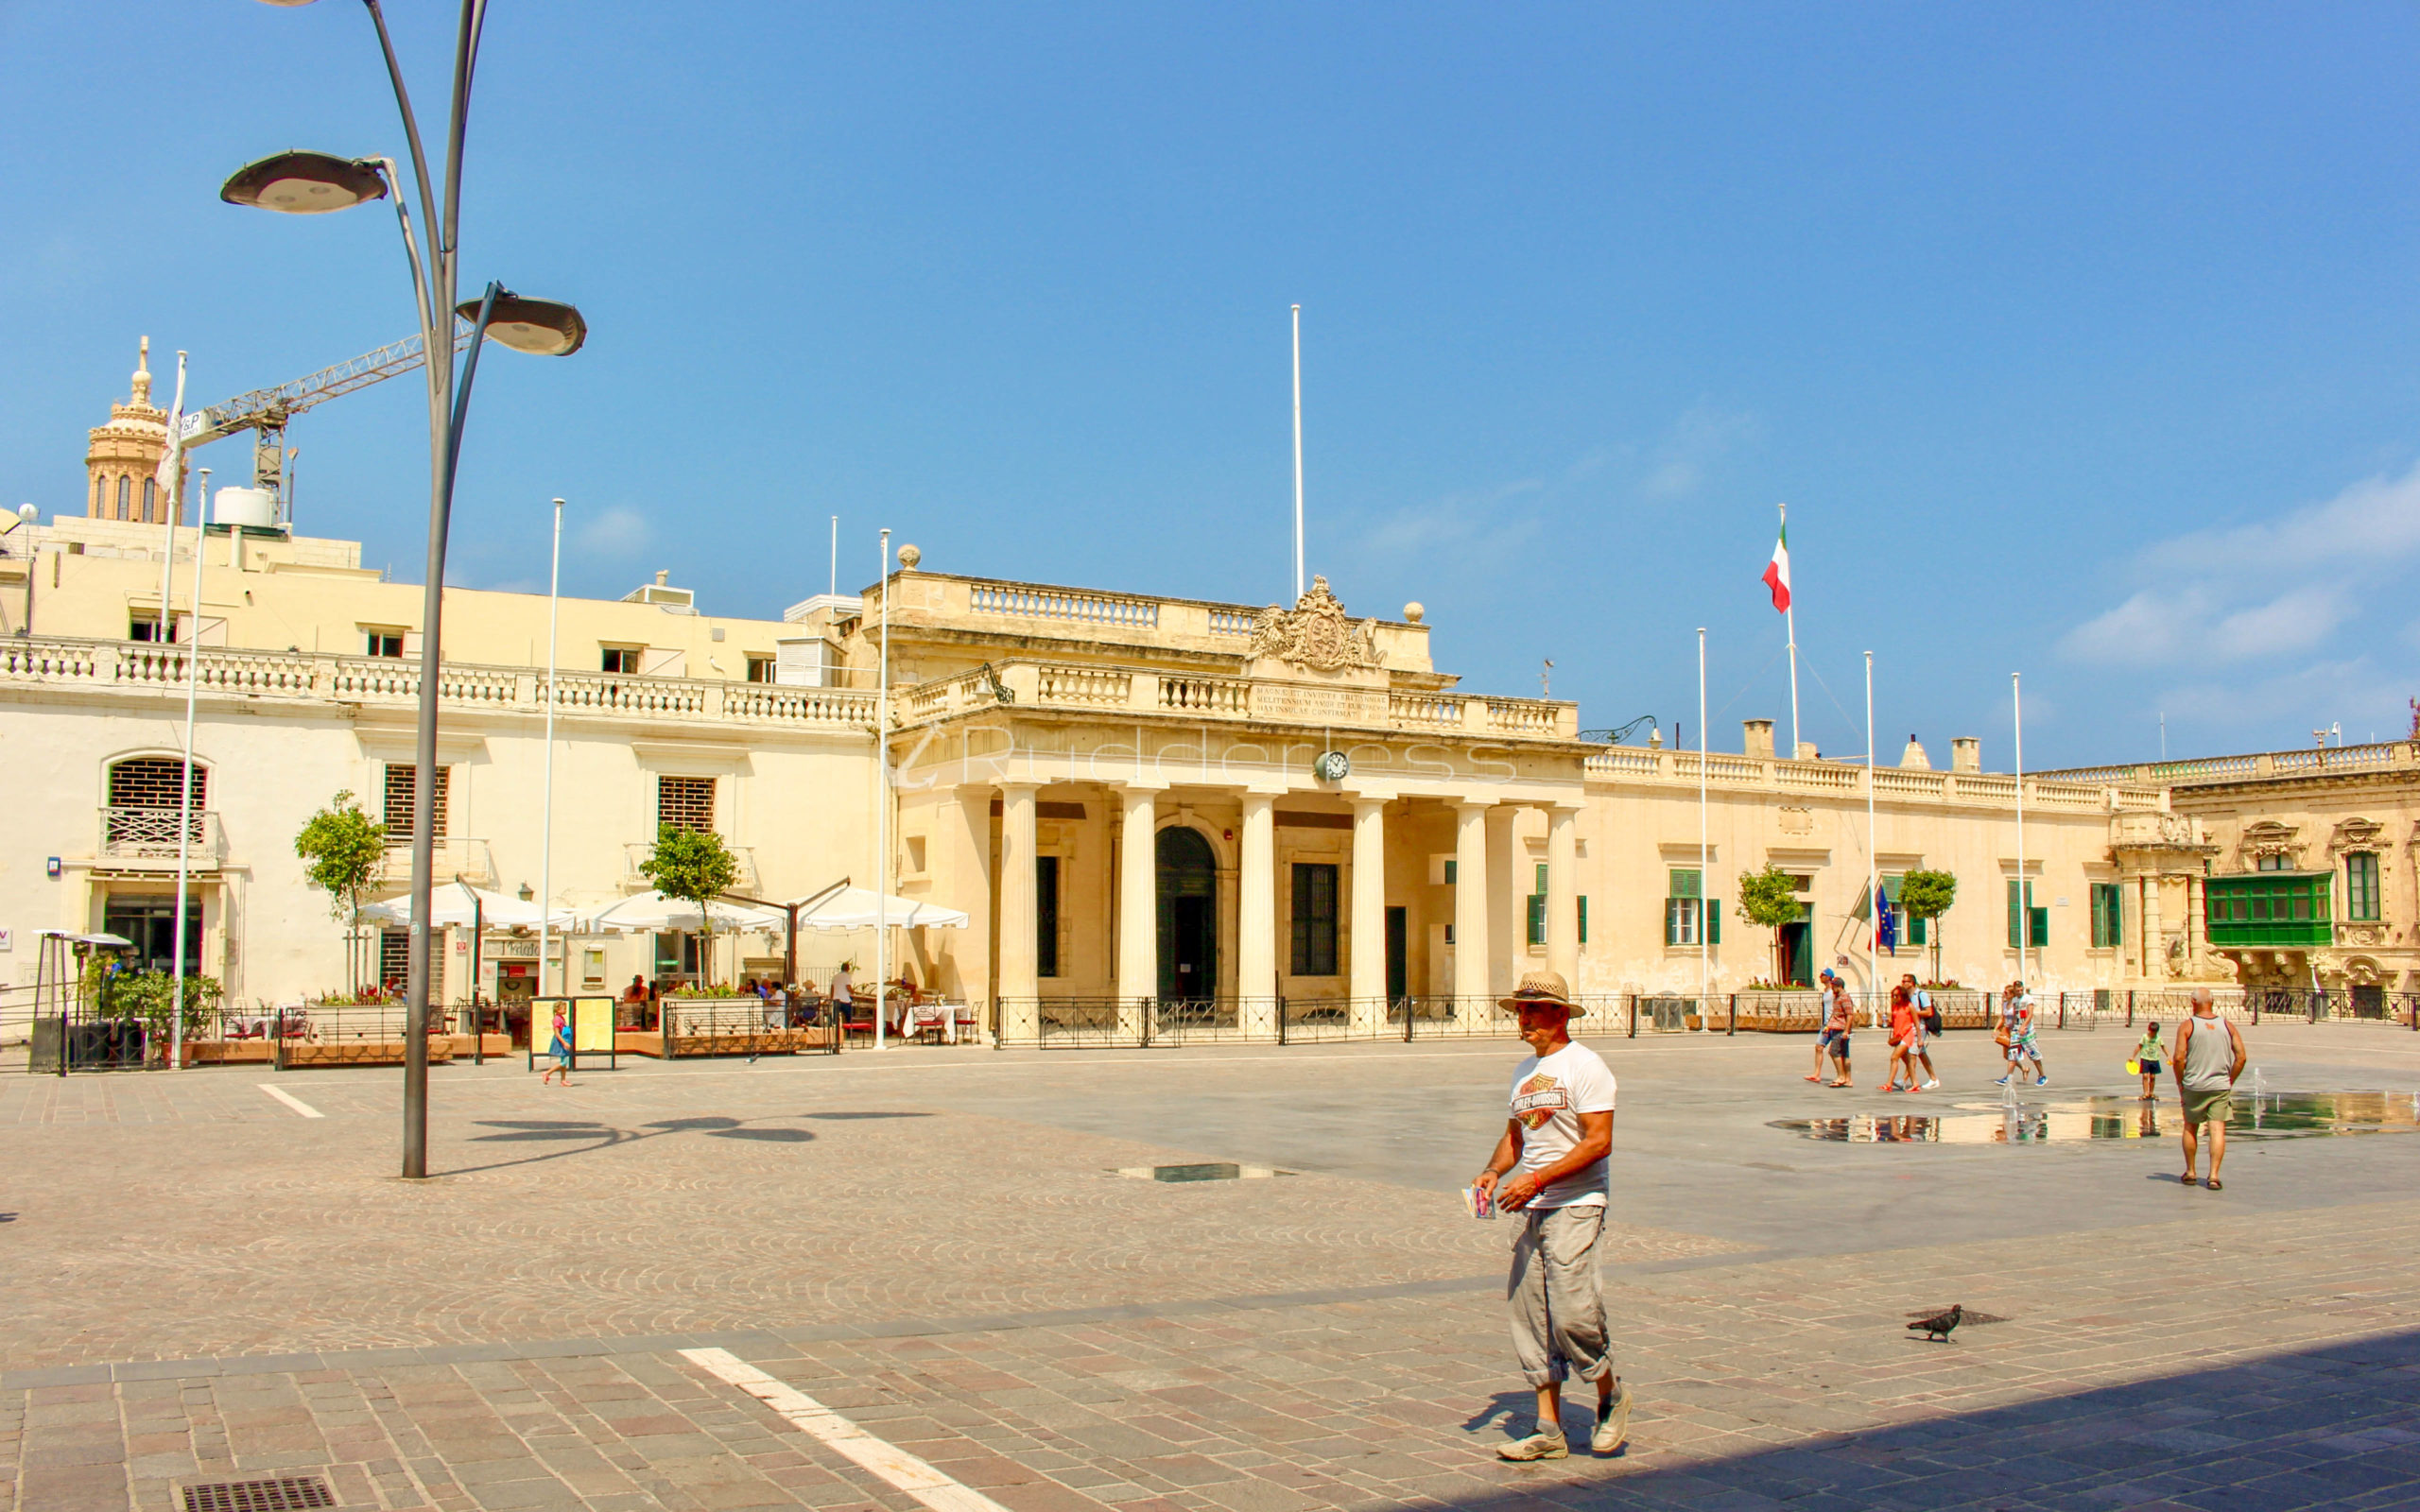 valletta malta things to do - ST GEORGE'S SQUARE